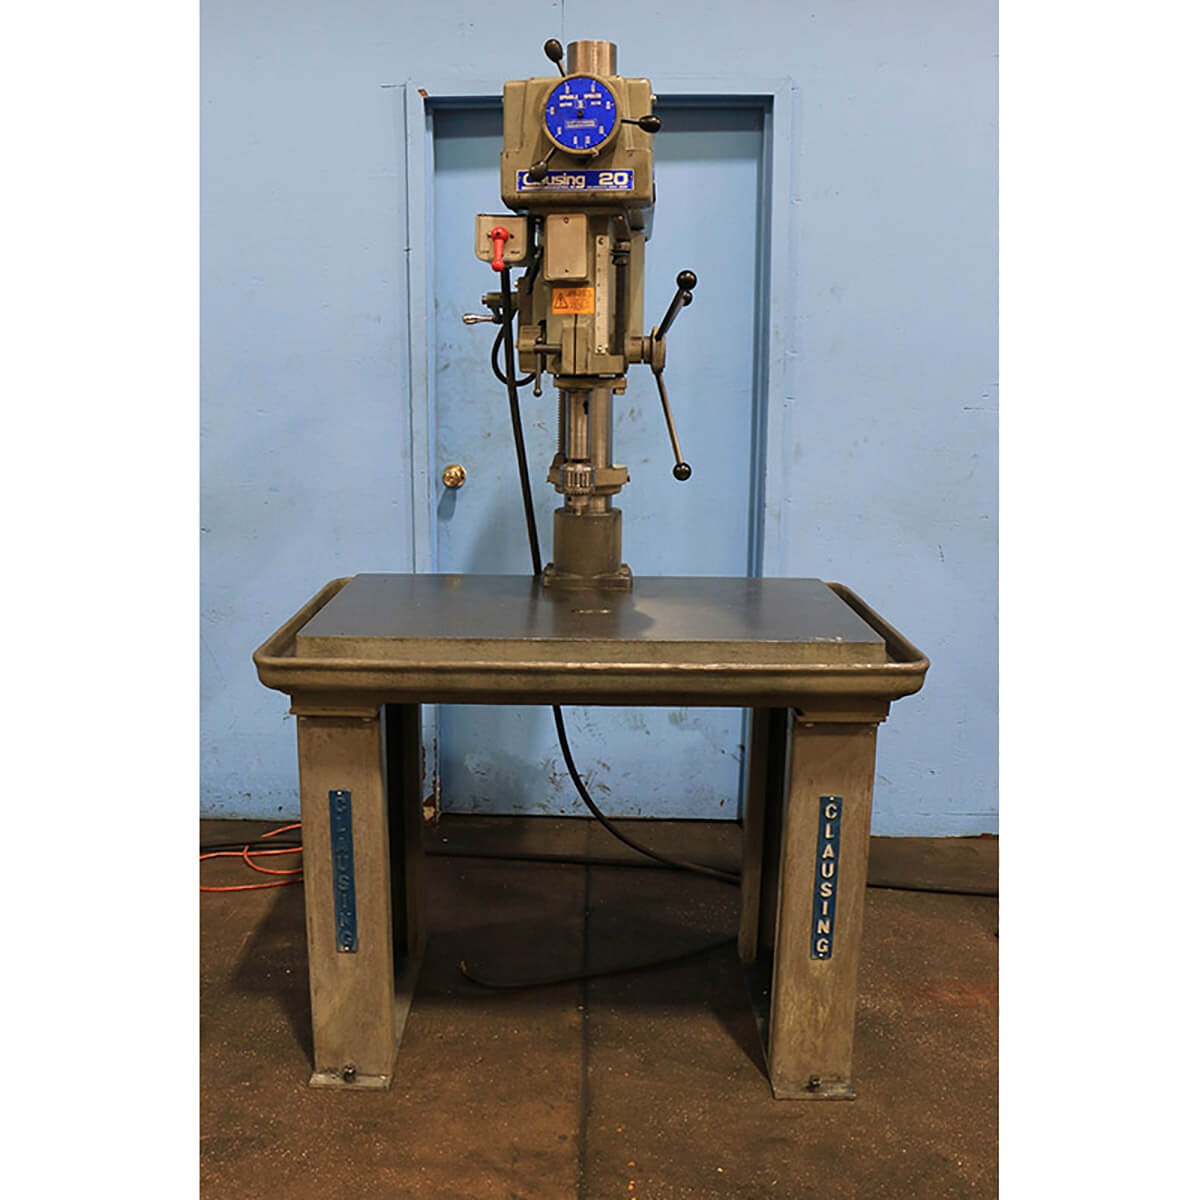 2 Speed Drum Switch for Clausing Drill Press